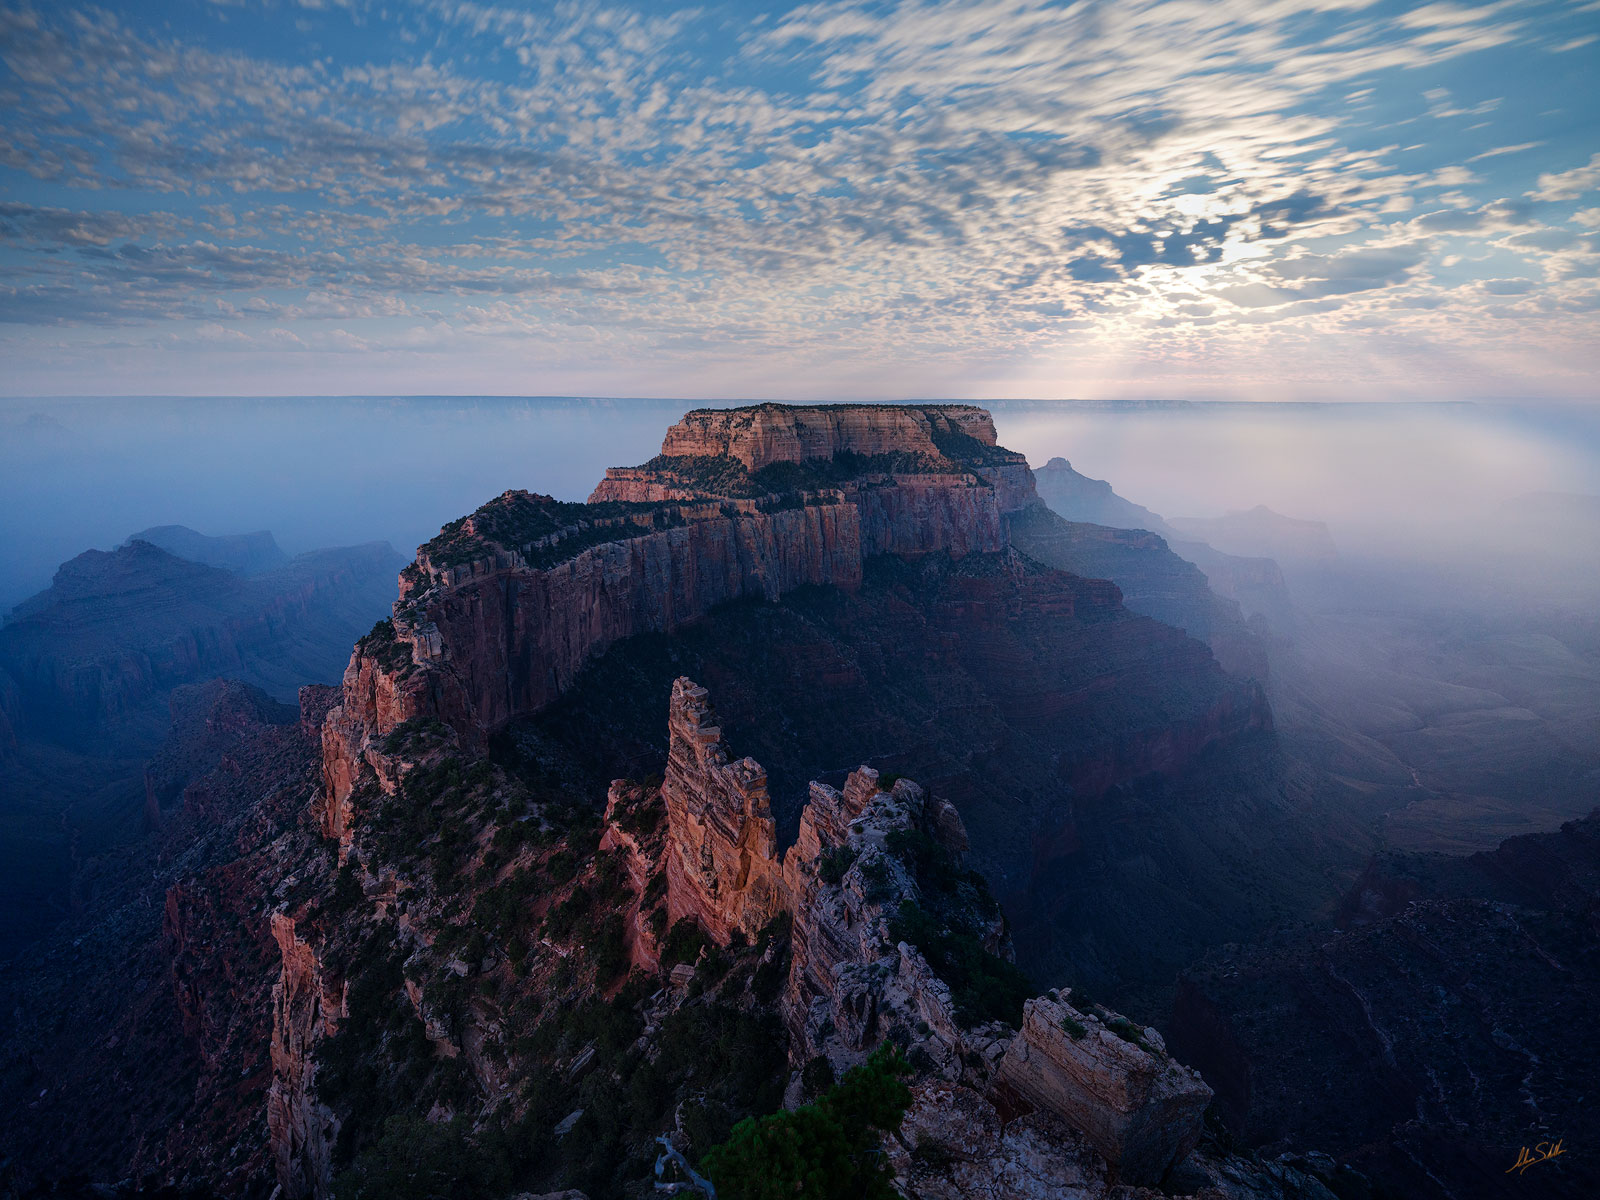 AZ, Arizona, Cape Royal, Grand Canyon, Moon, Moonlight, Moonset, National Park, Smoke, South Rim, Wotans Throne, forest fire, photo